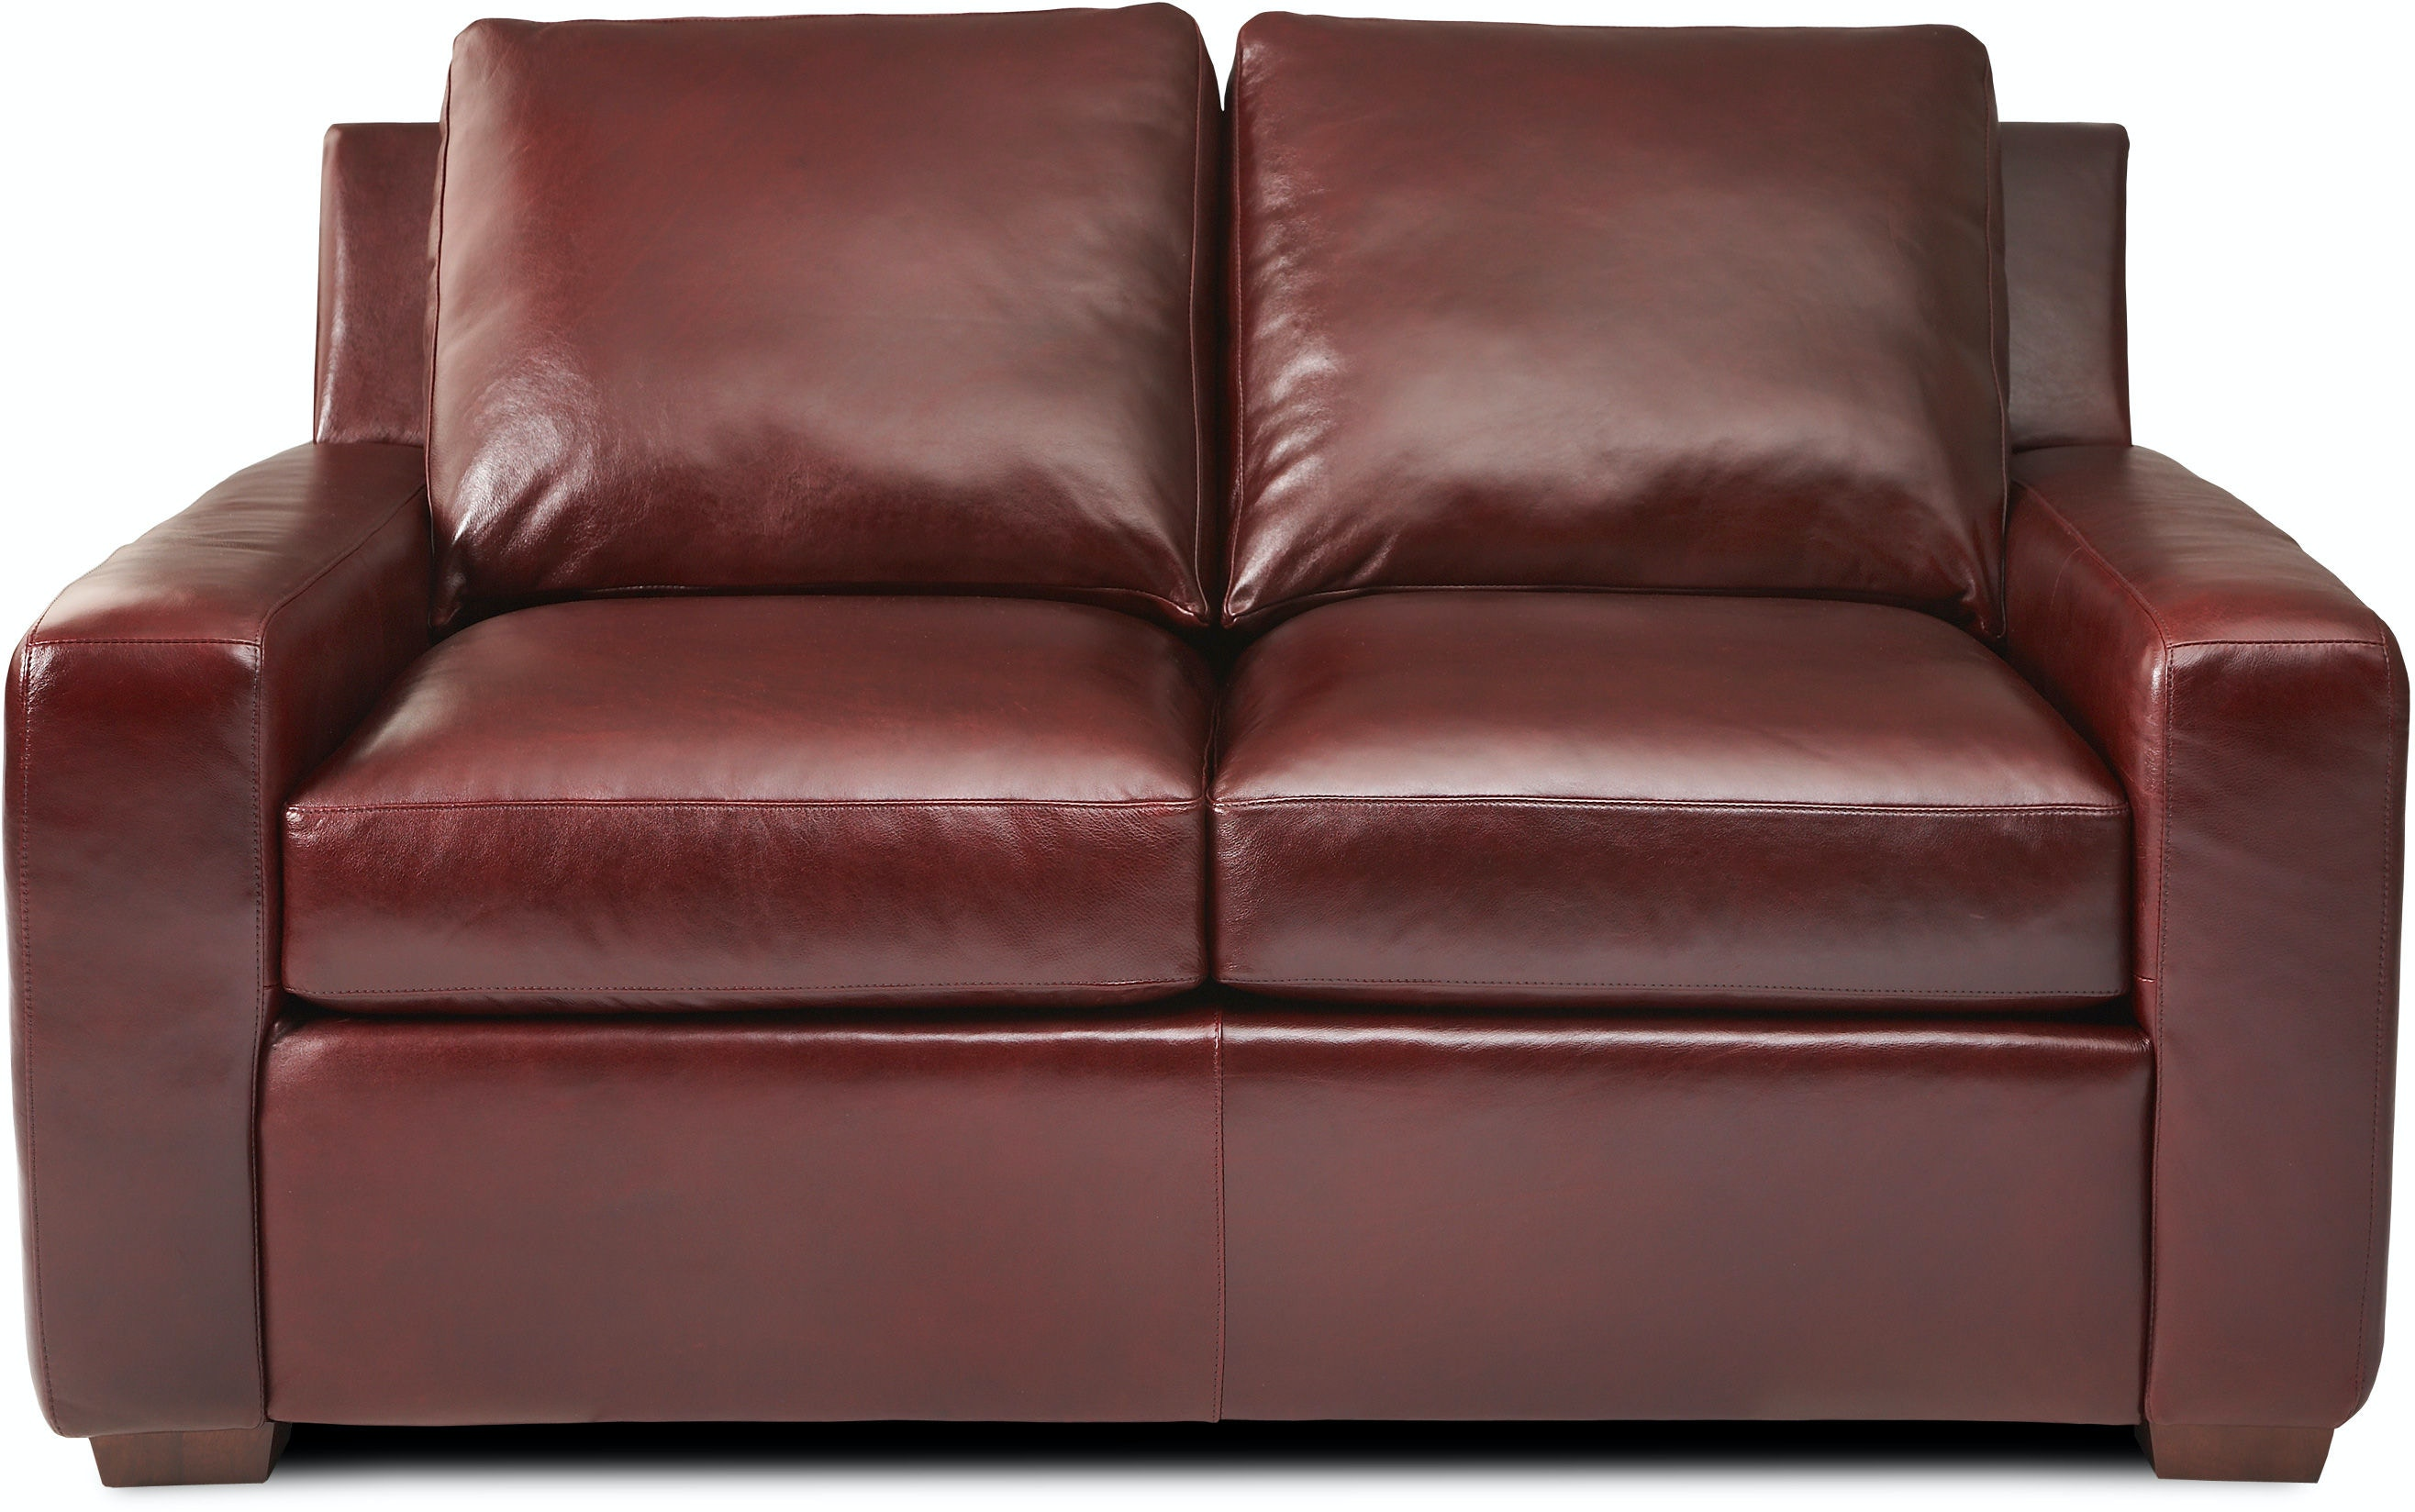 American Leather Living Room Two Cushion Loveseat Lis Lvs